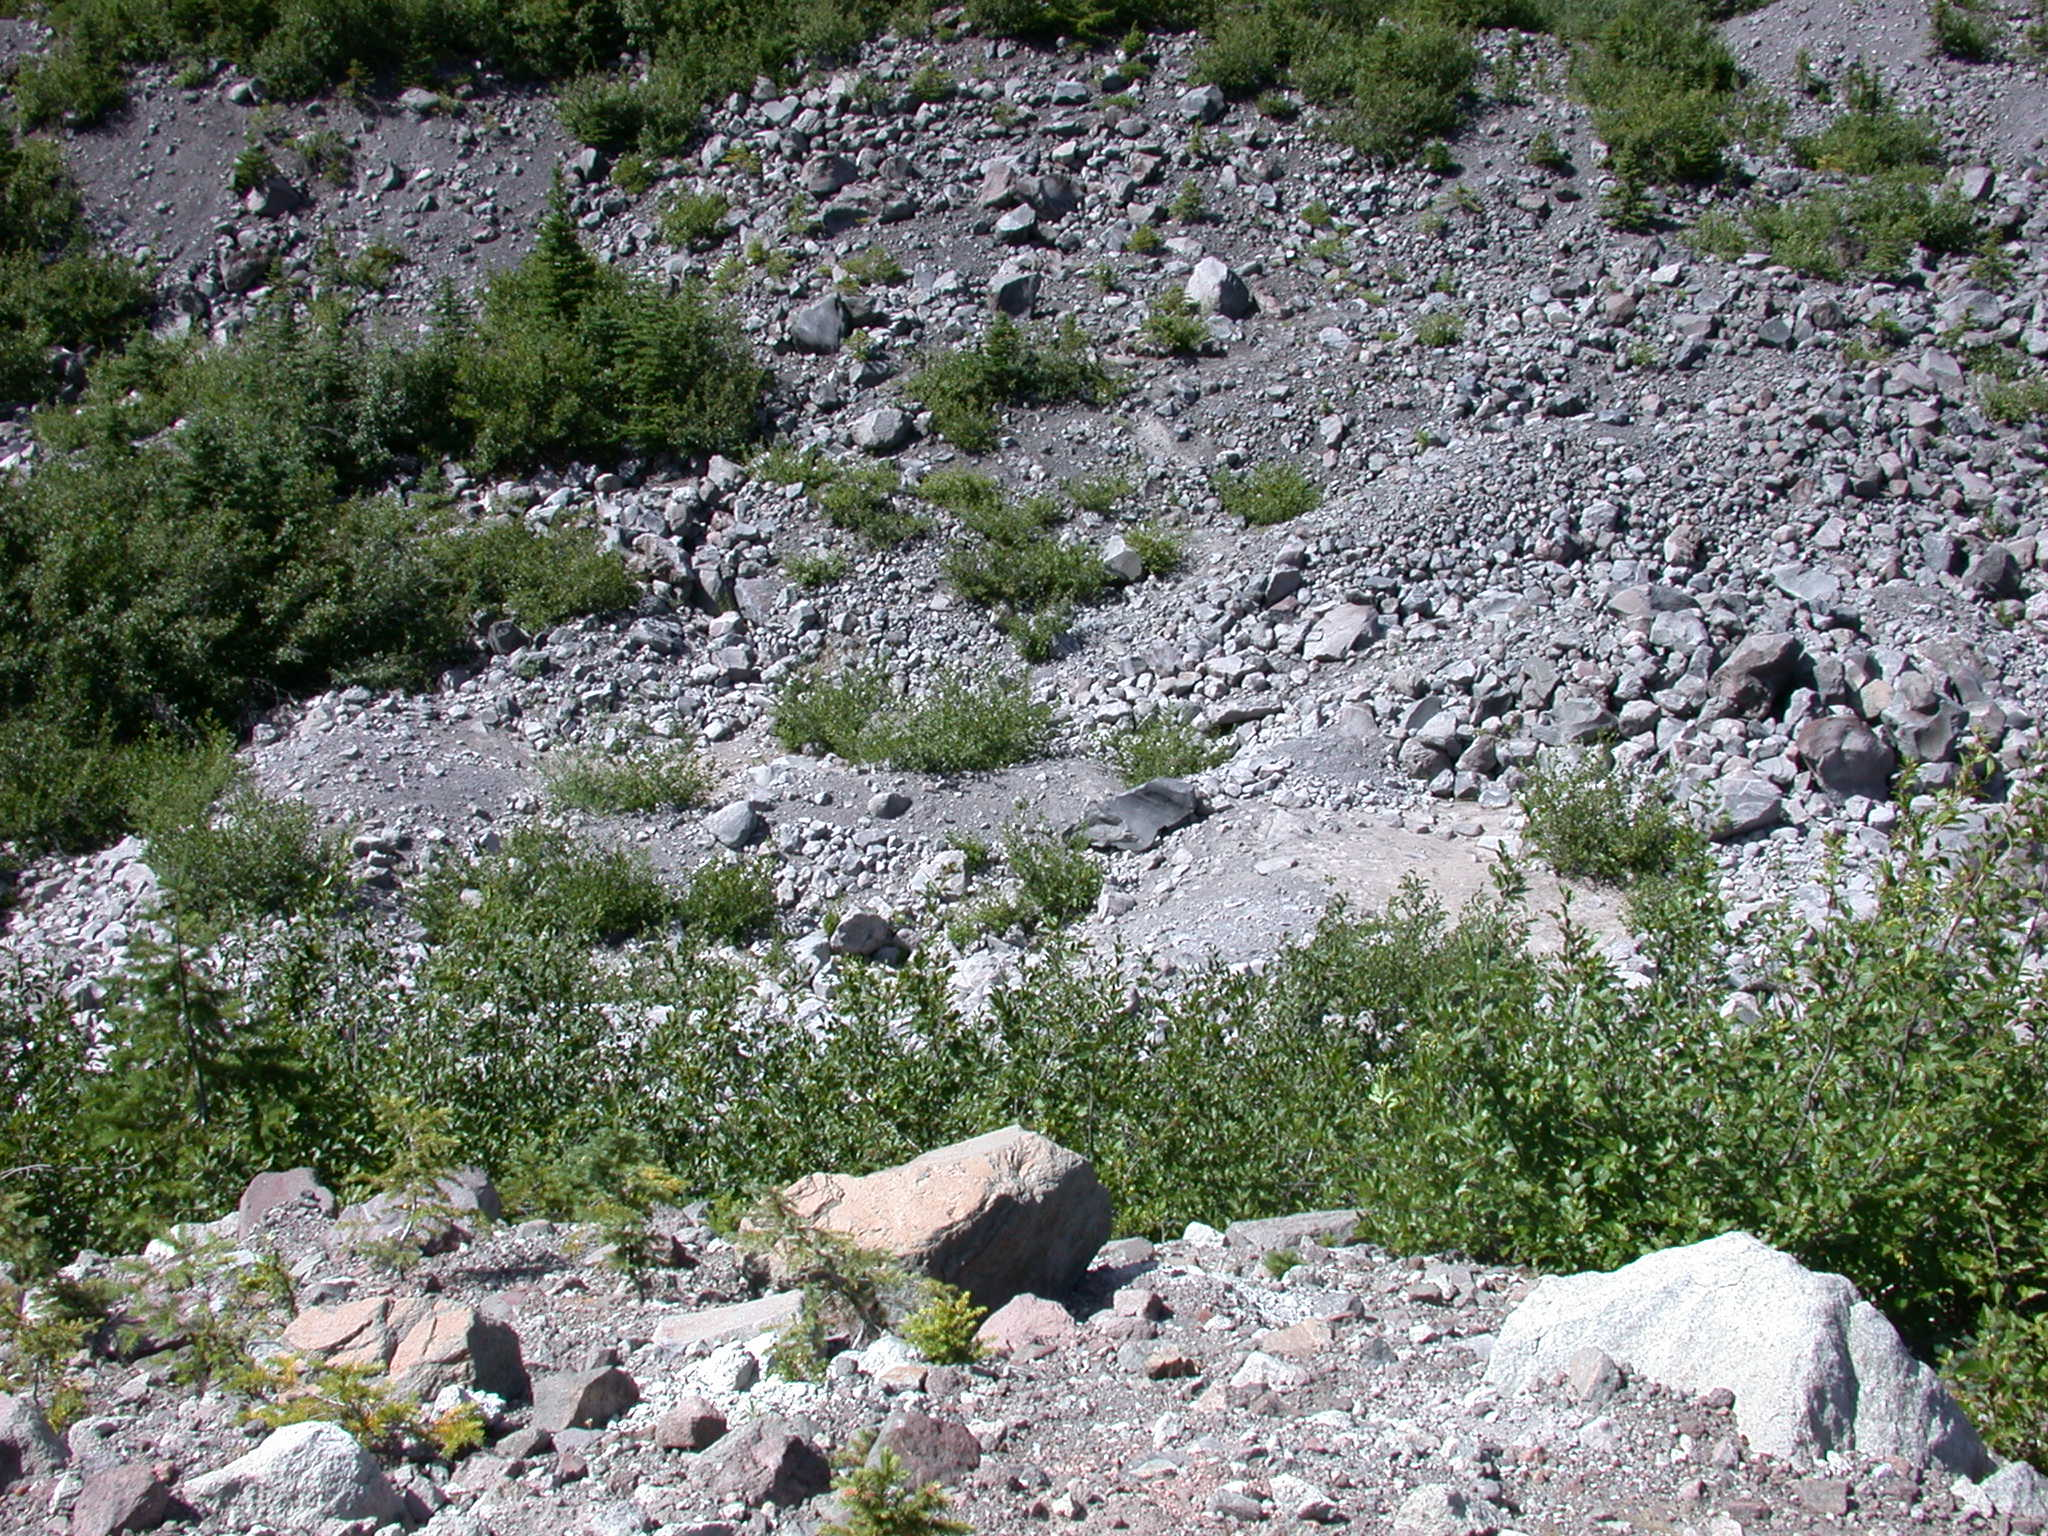 Change in Rock Deposits in Glacial Canyon of Mount Rainier